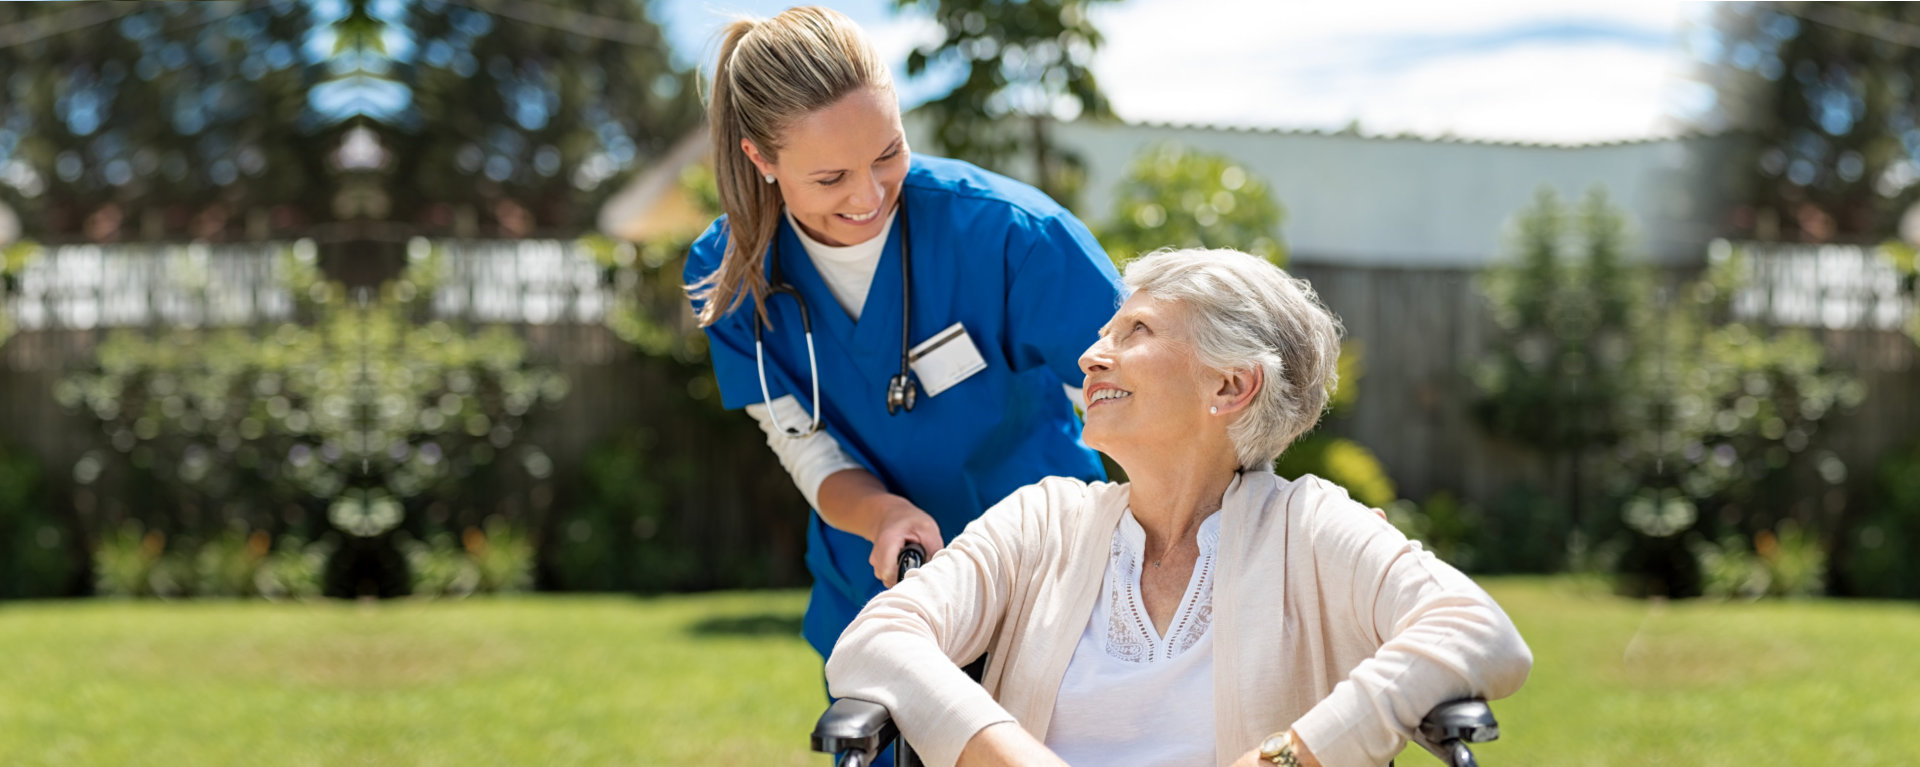 senior woman on a wheelchair while her caregiver is behind her